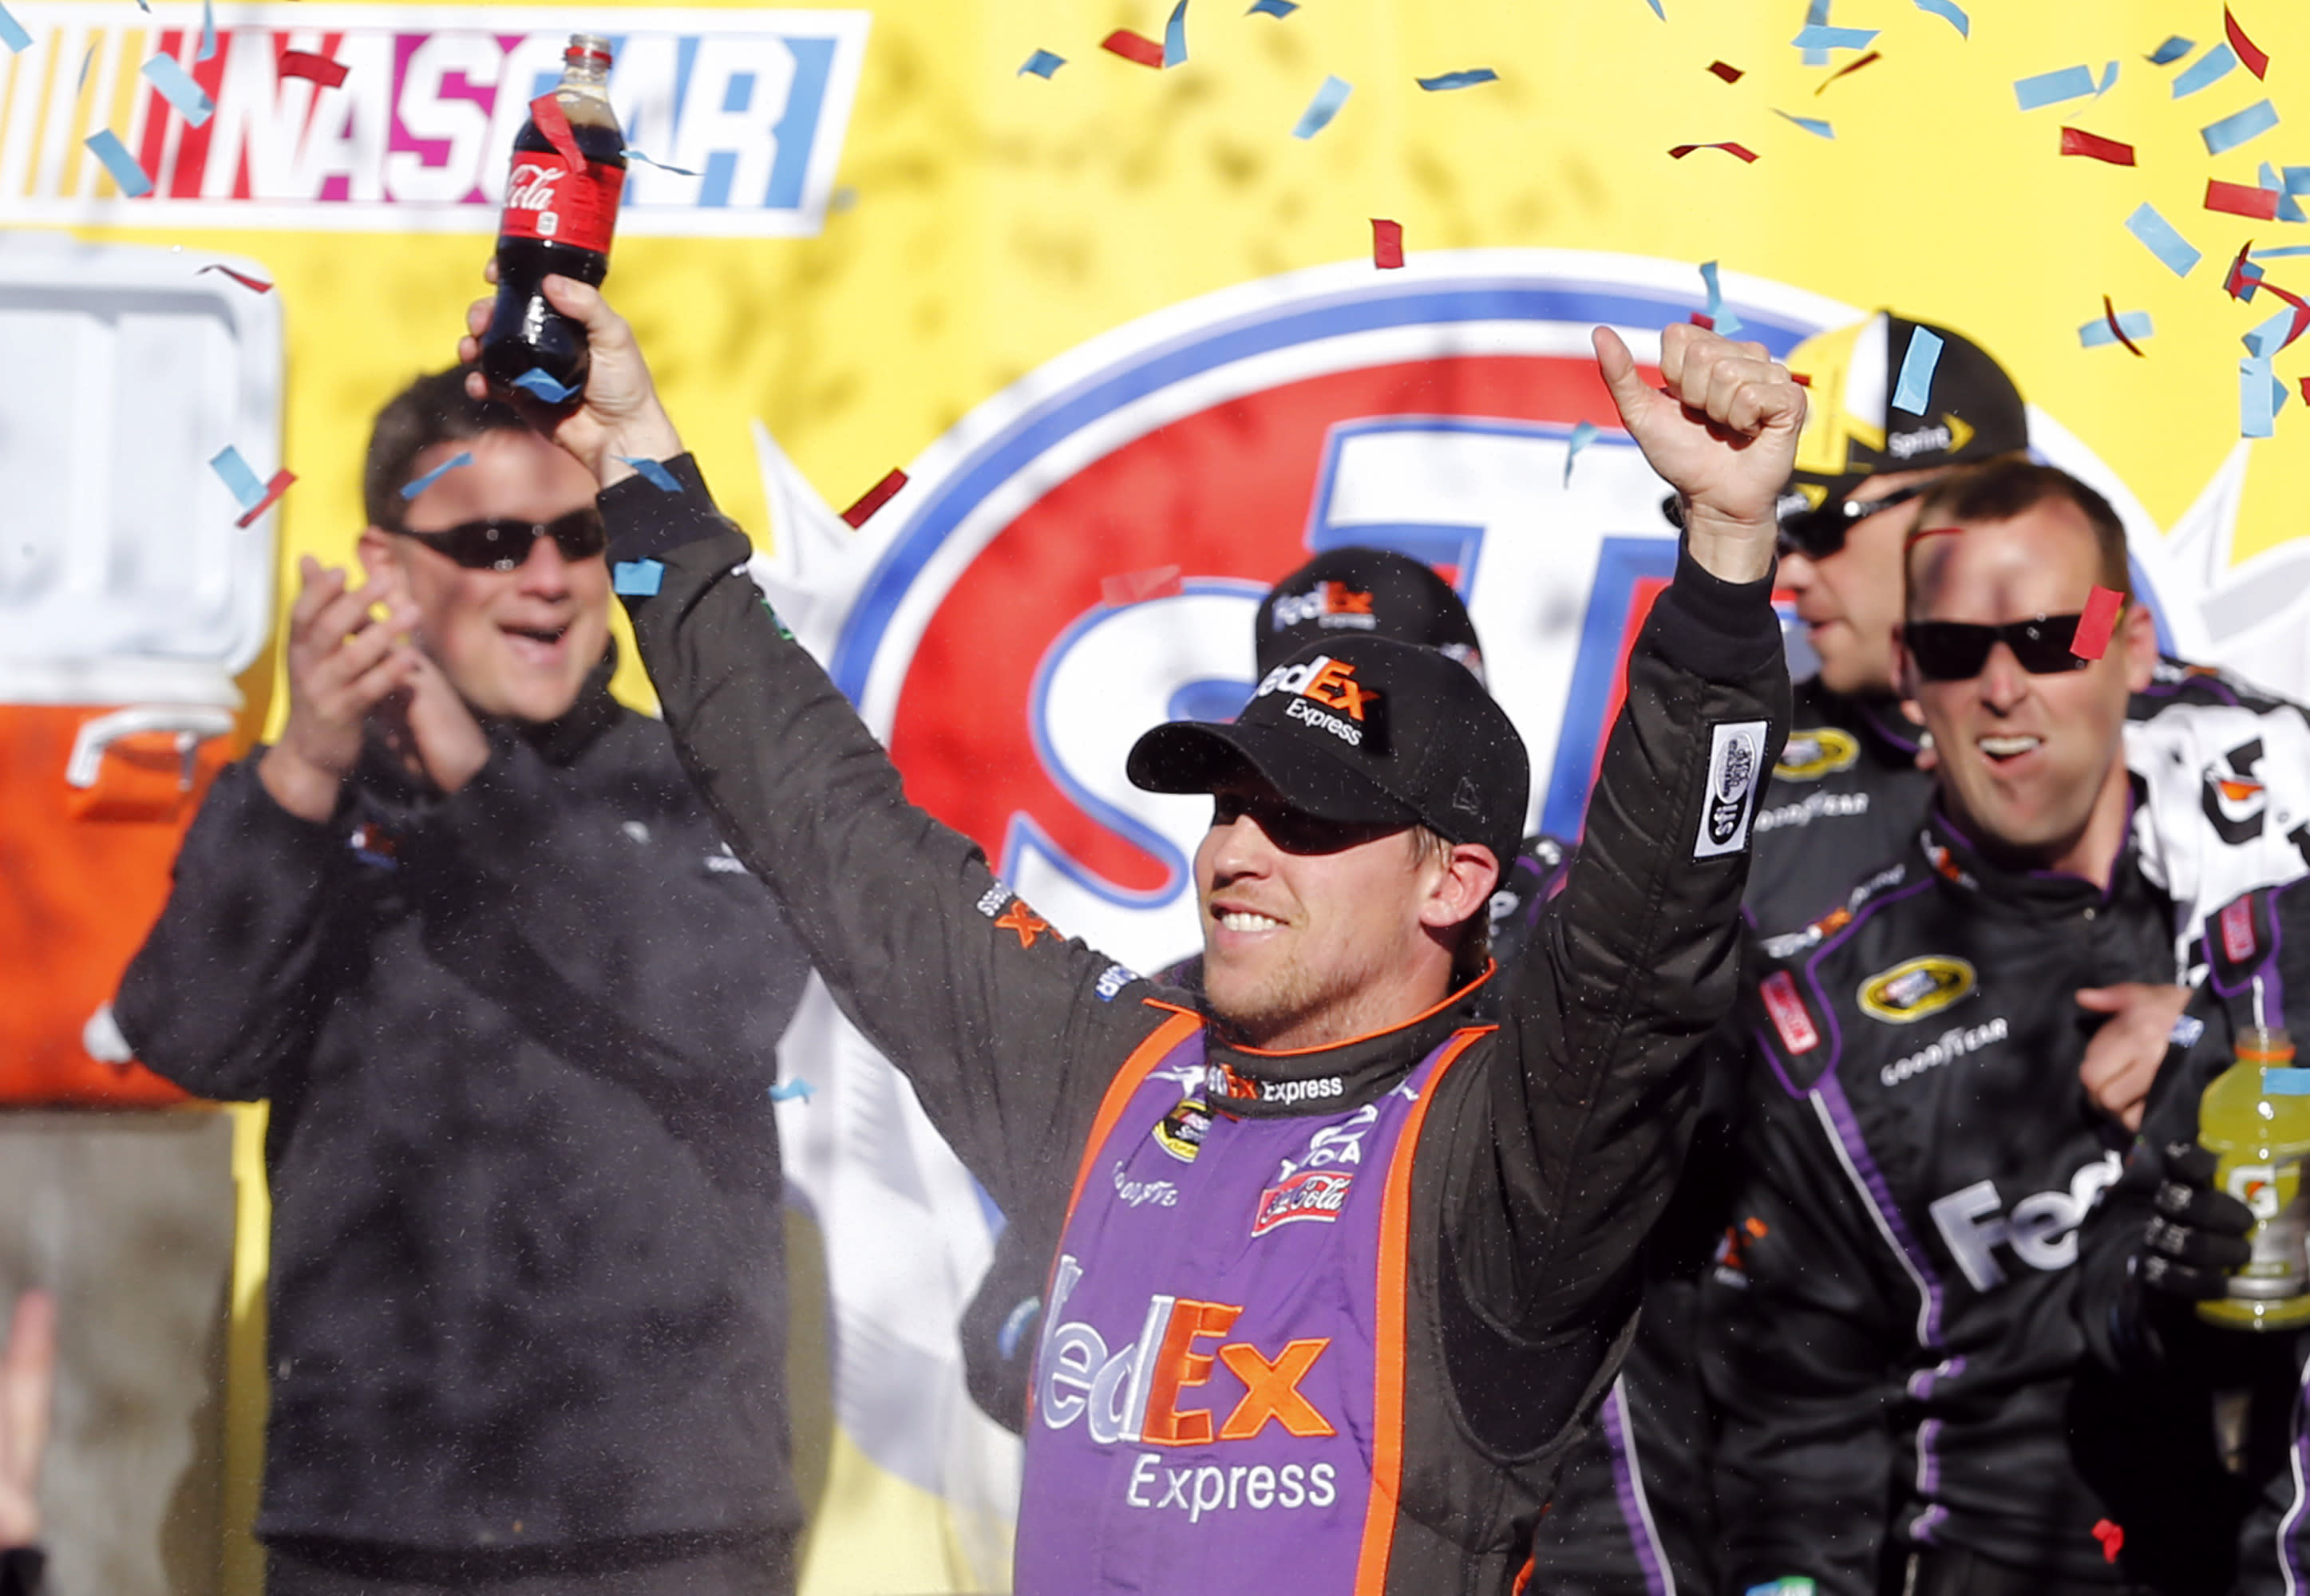 Denny Hamlin races to 25th Cup win, 5th at Martinsville